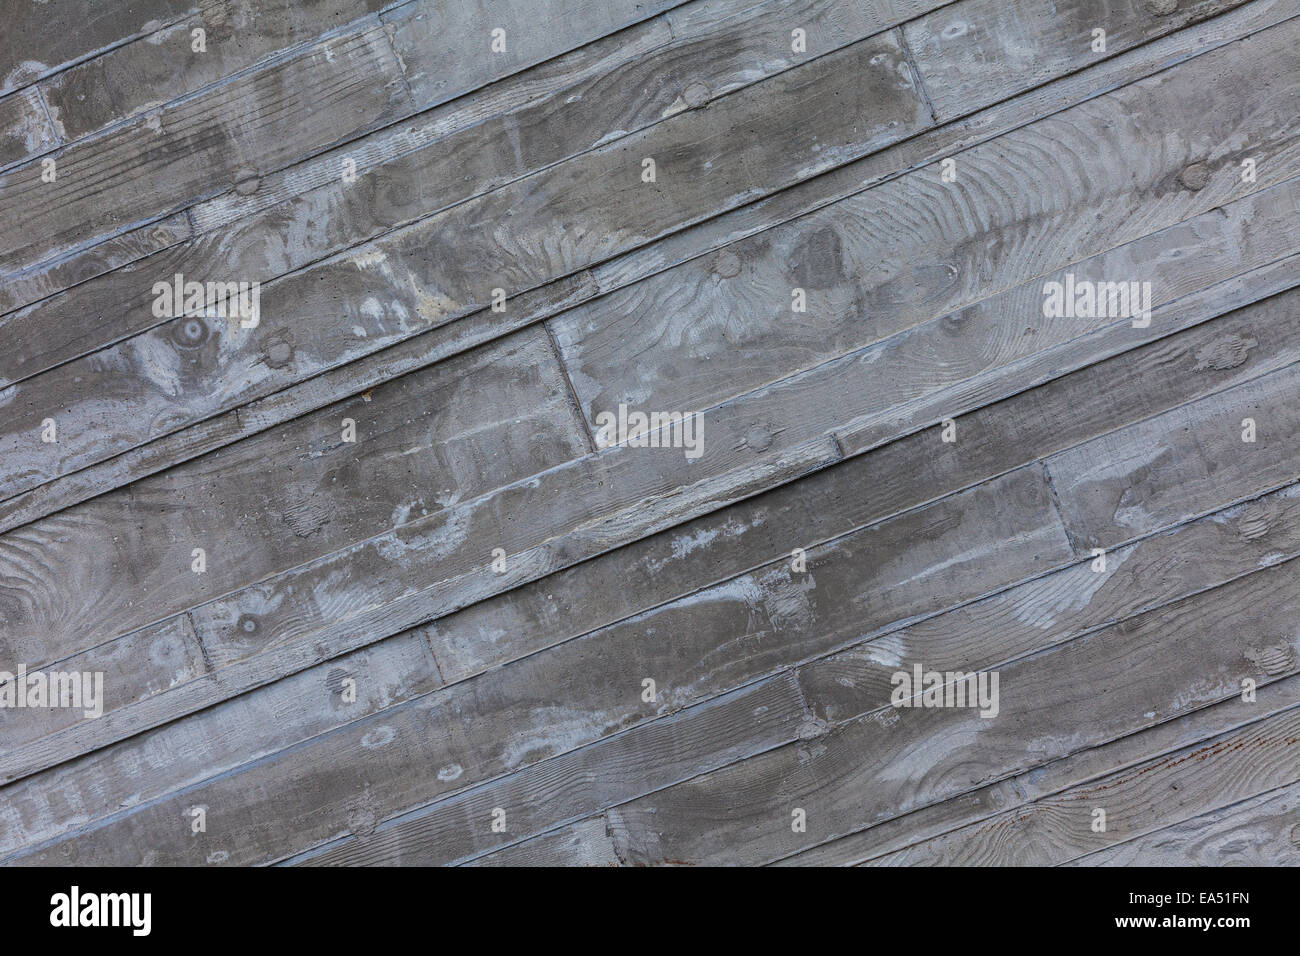 Exterior Concrete Wall With The Texture Of Rough Sawn Wooden Planks On The  Campus Of UBC, Vancouver